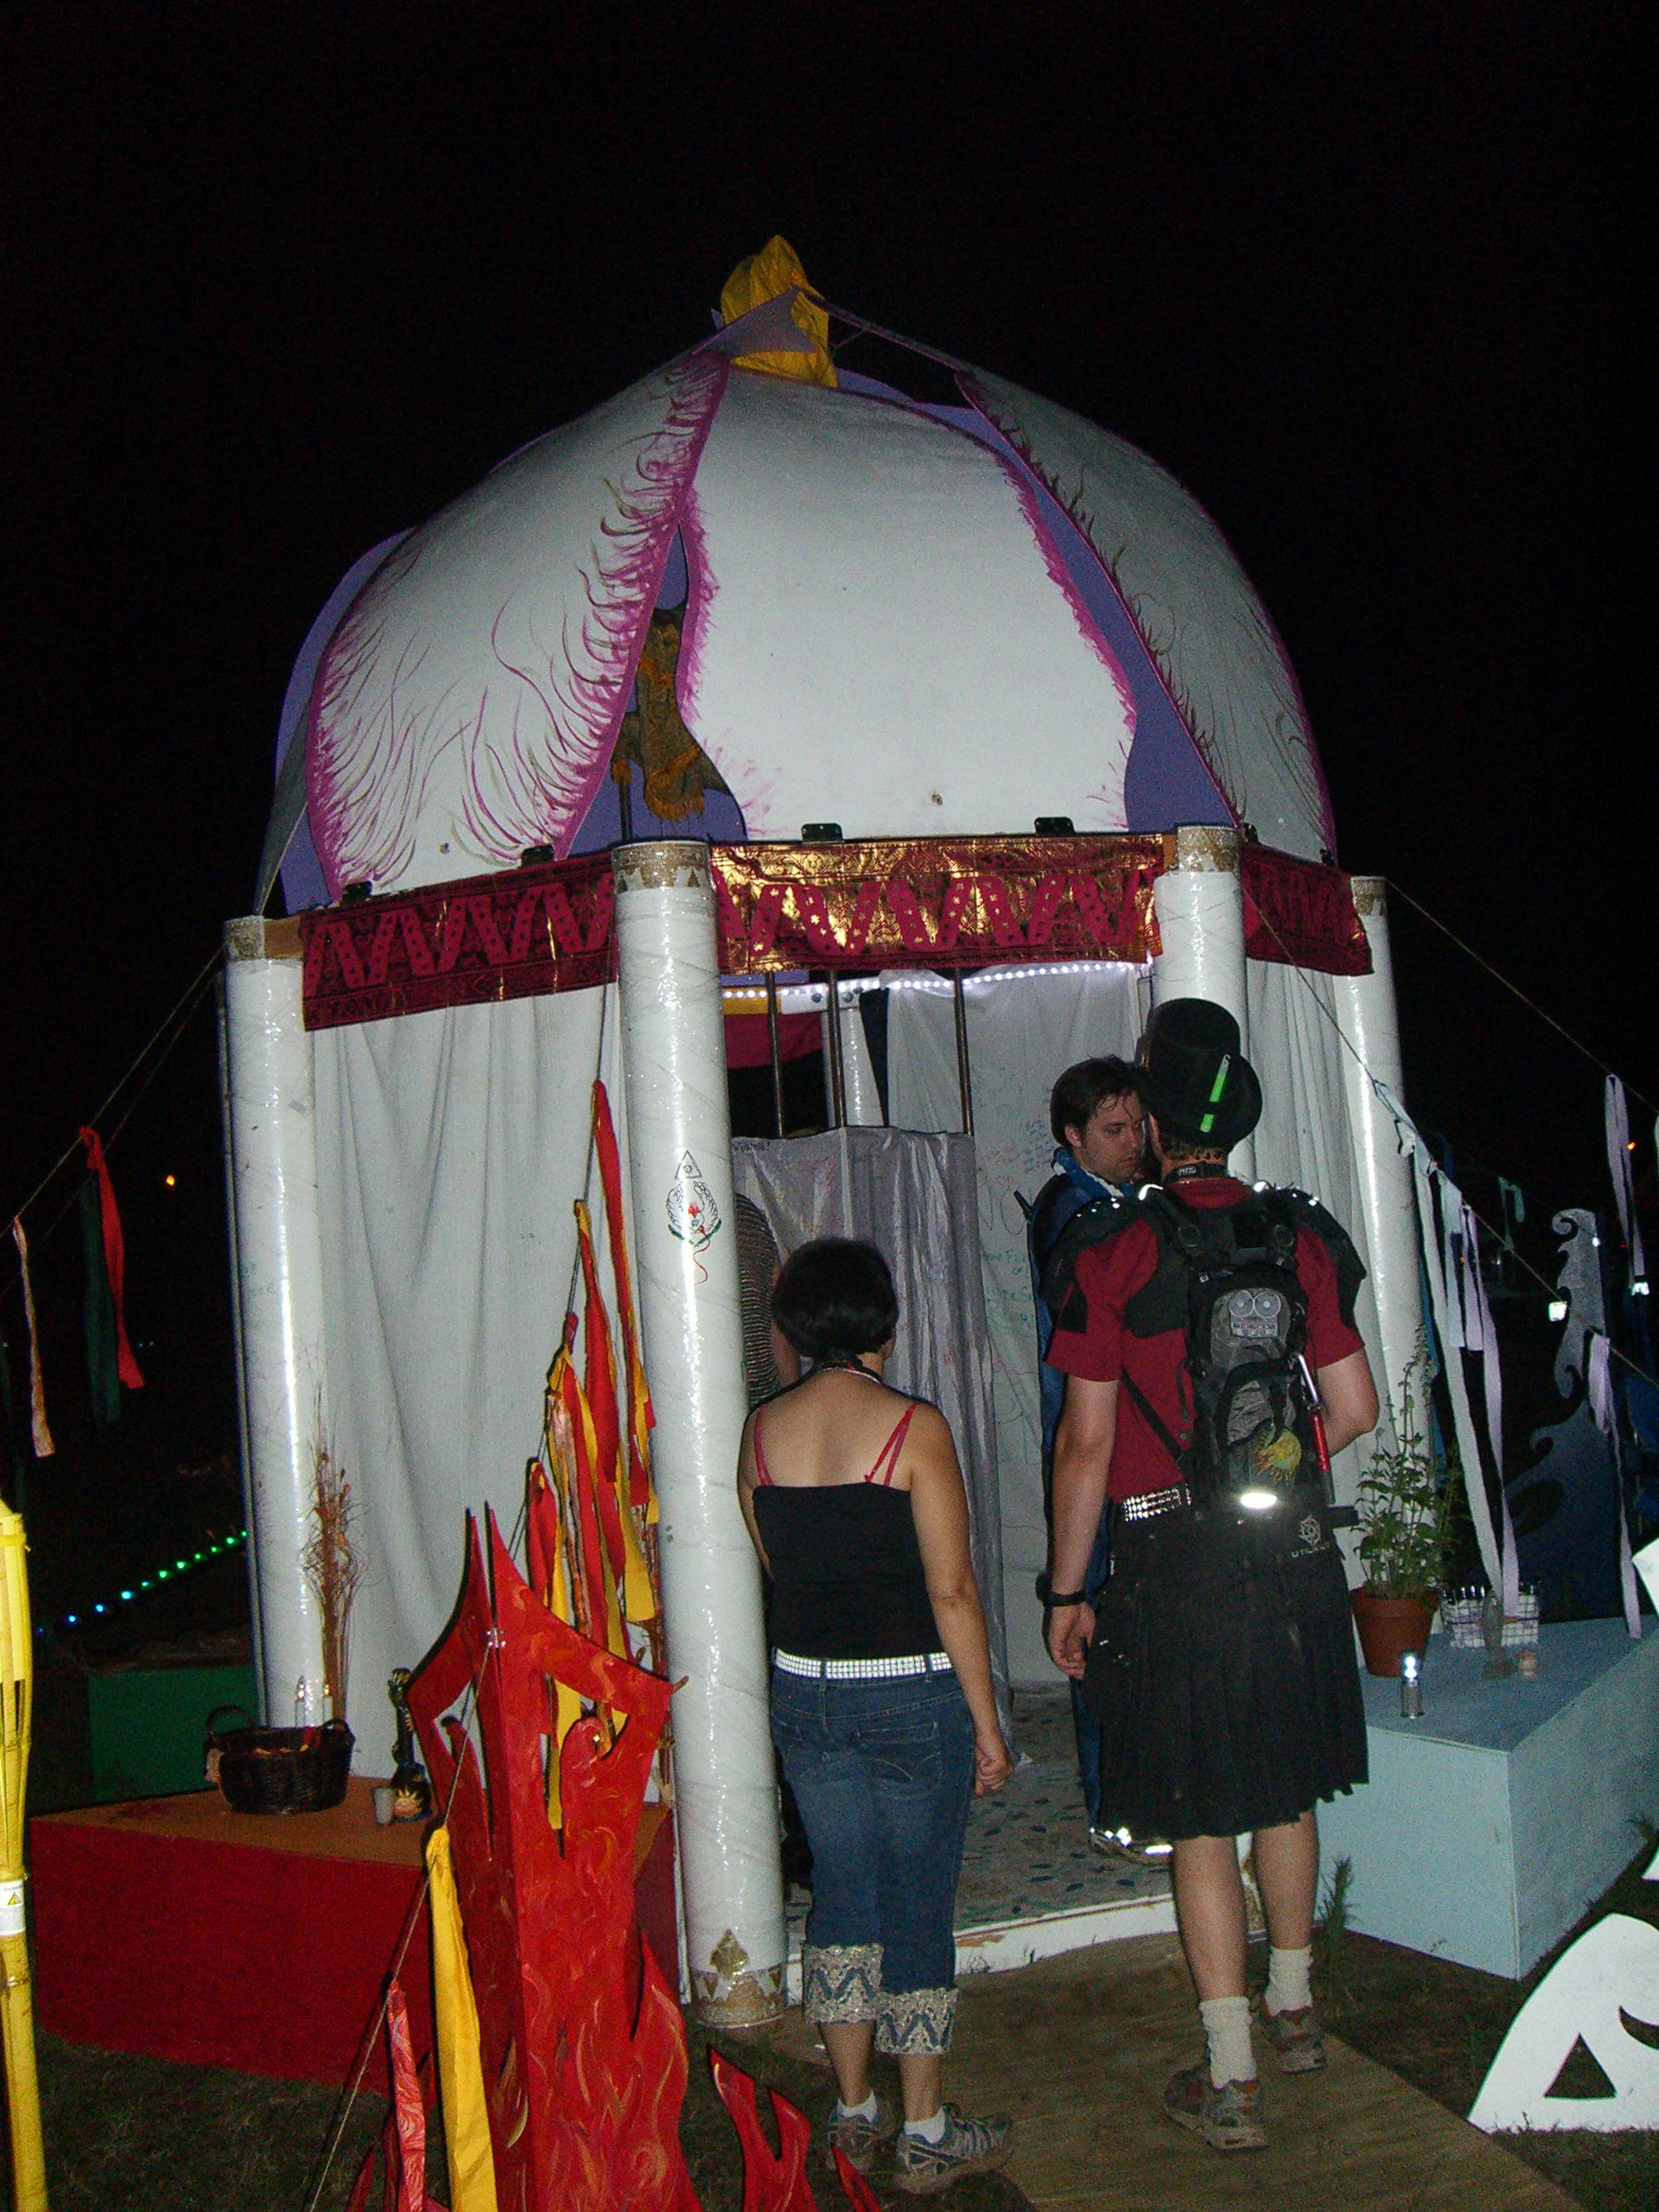 A booth with hanging fabric sheets for scribbling on